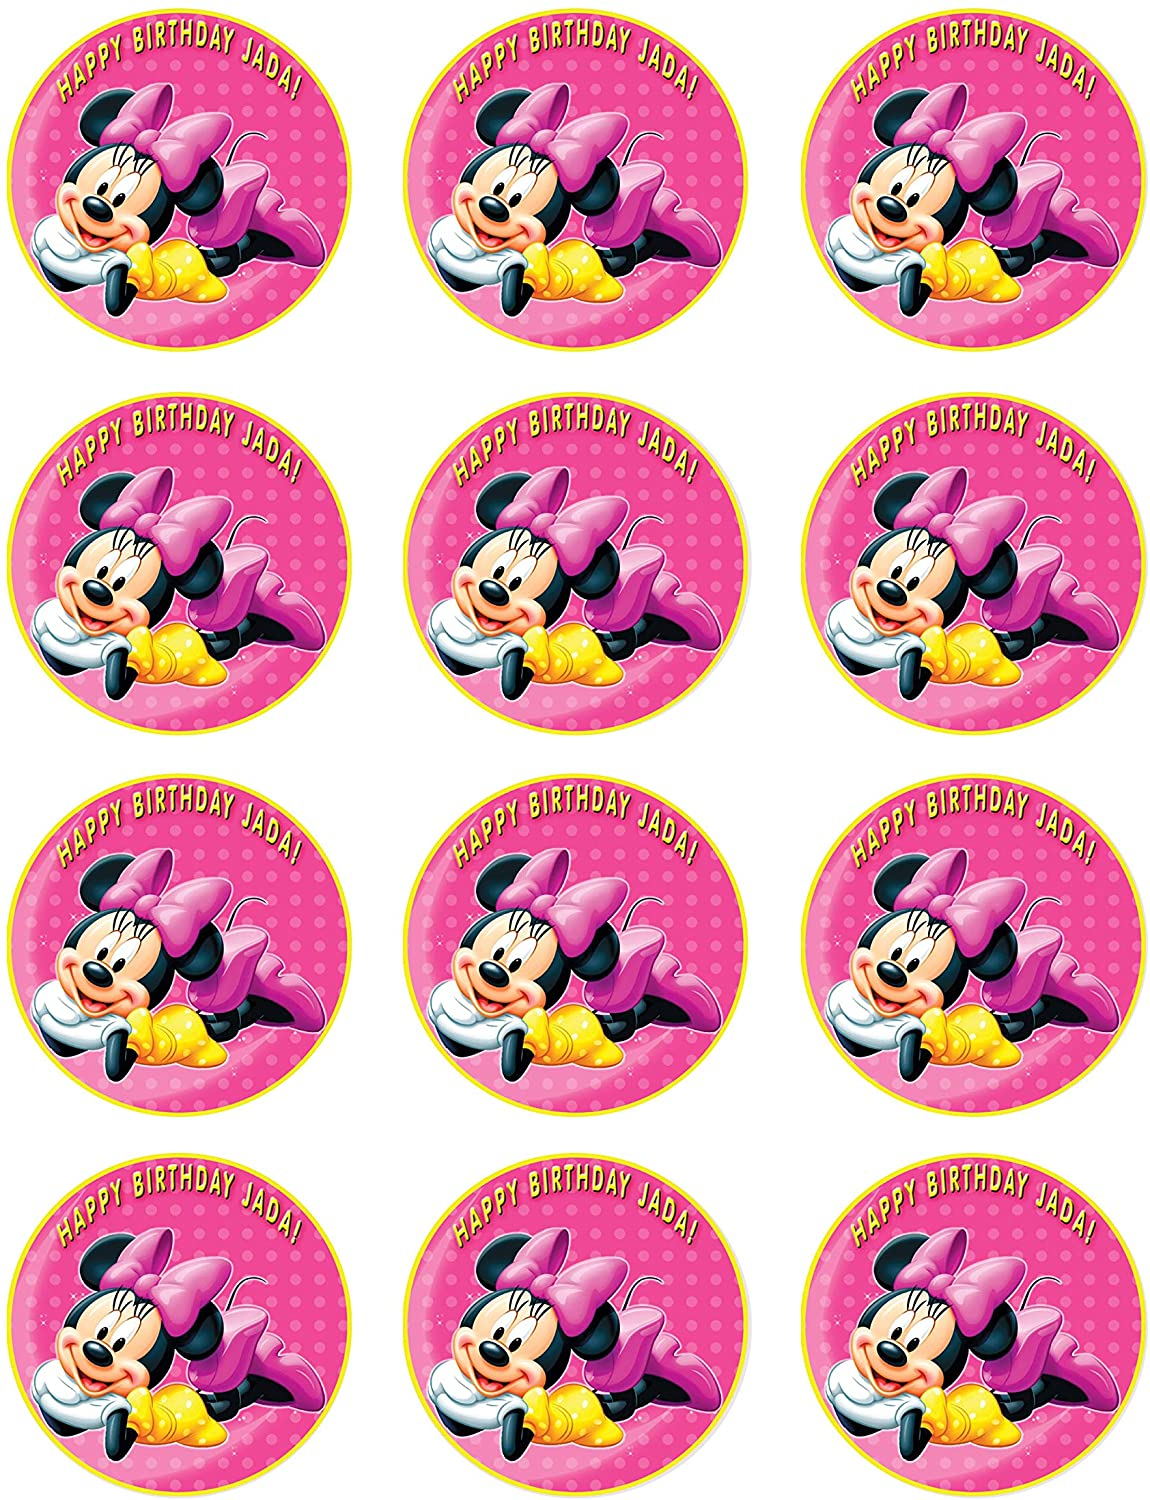 Minnie Mouse - Edible Cupcake Toppers - 2 cupcake (12 pieces/sheet)